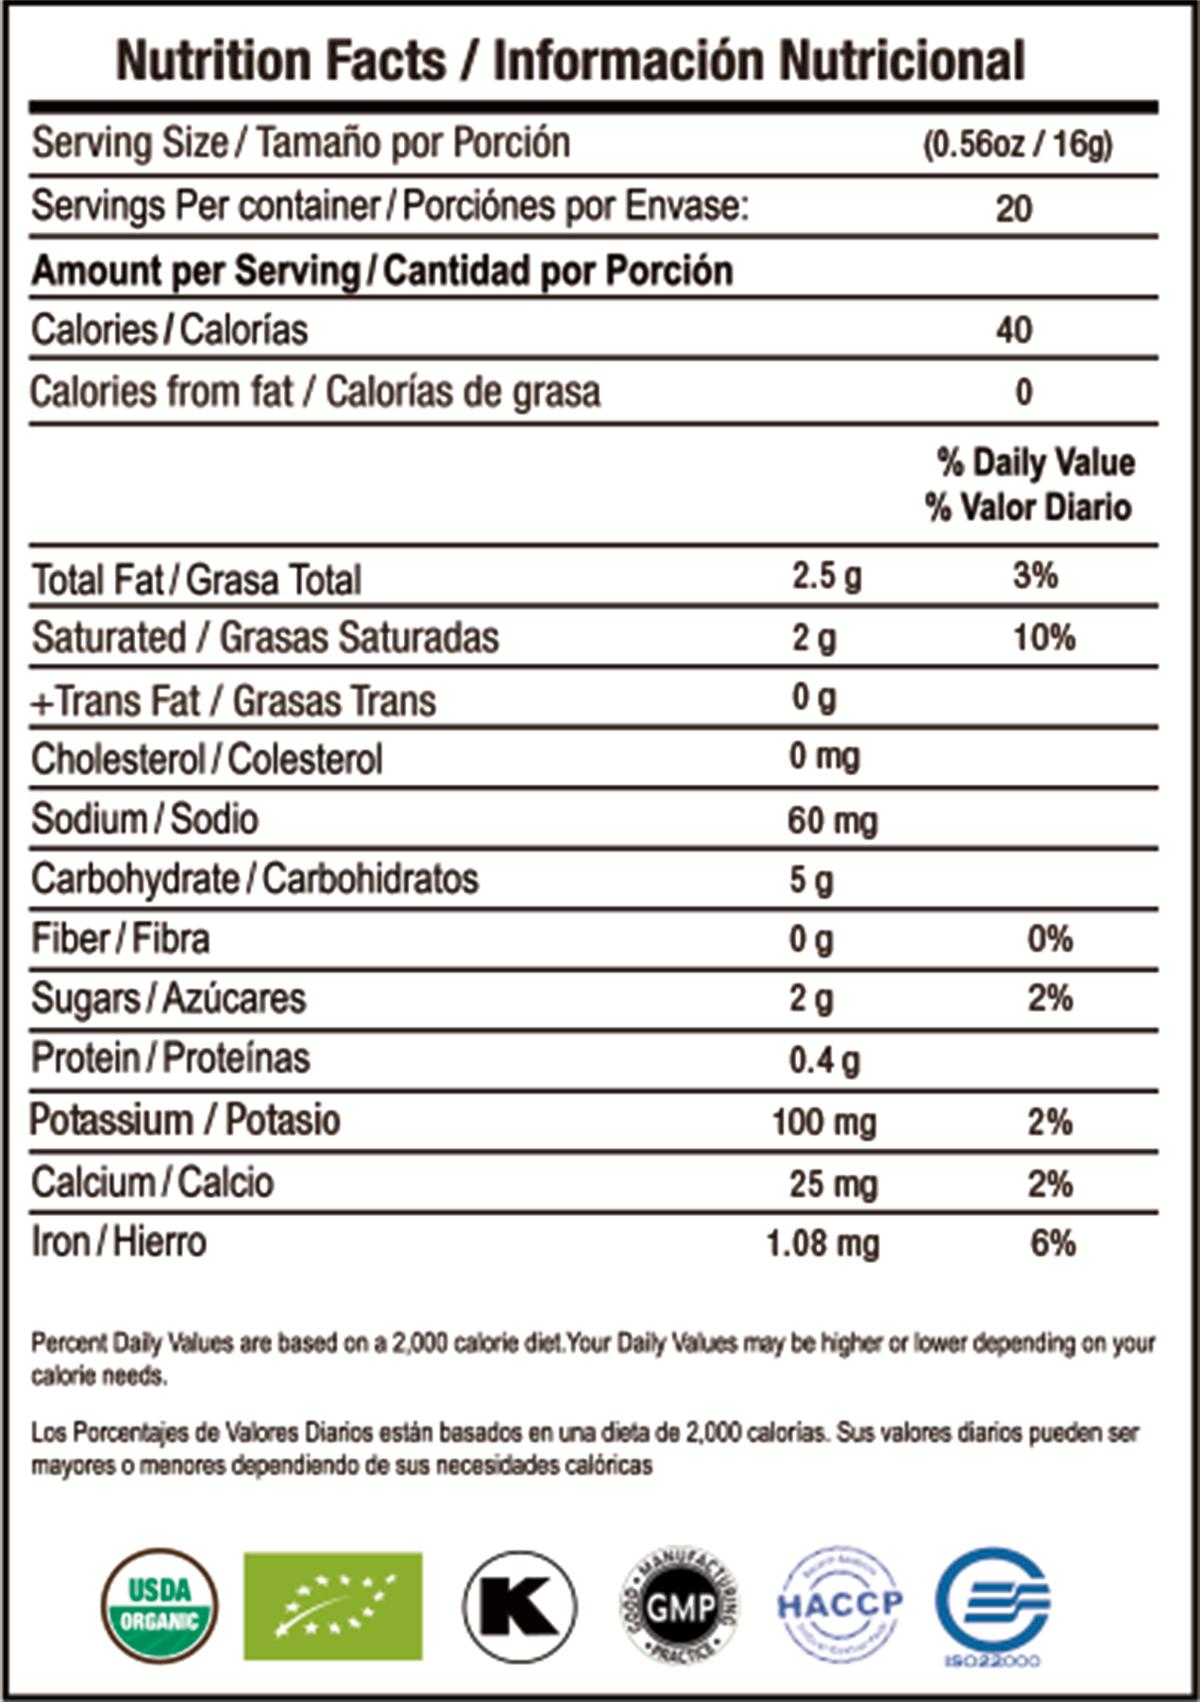 Latte Dorado nutrition facts